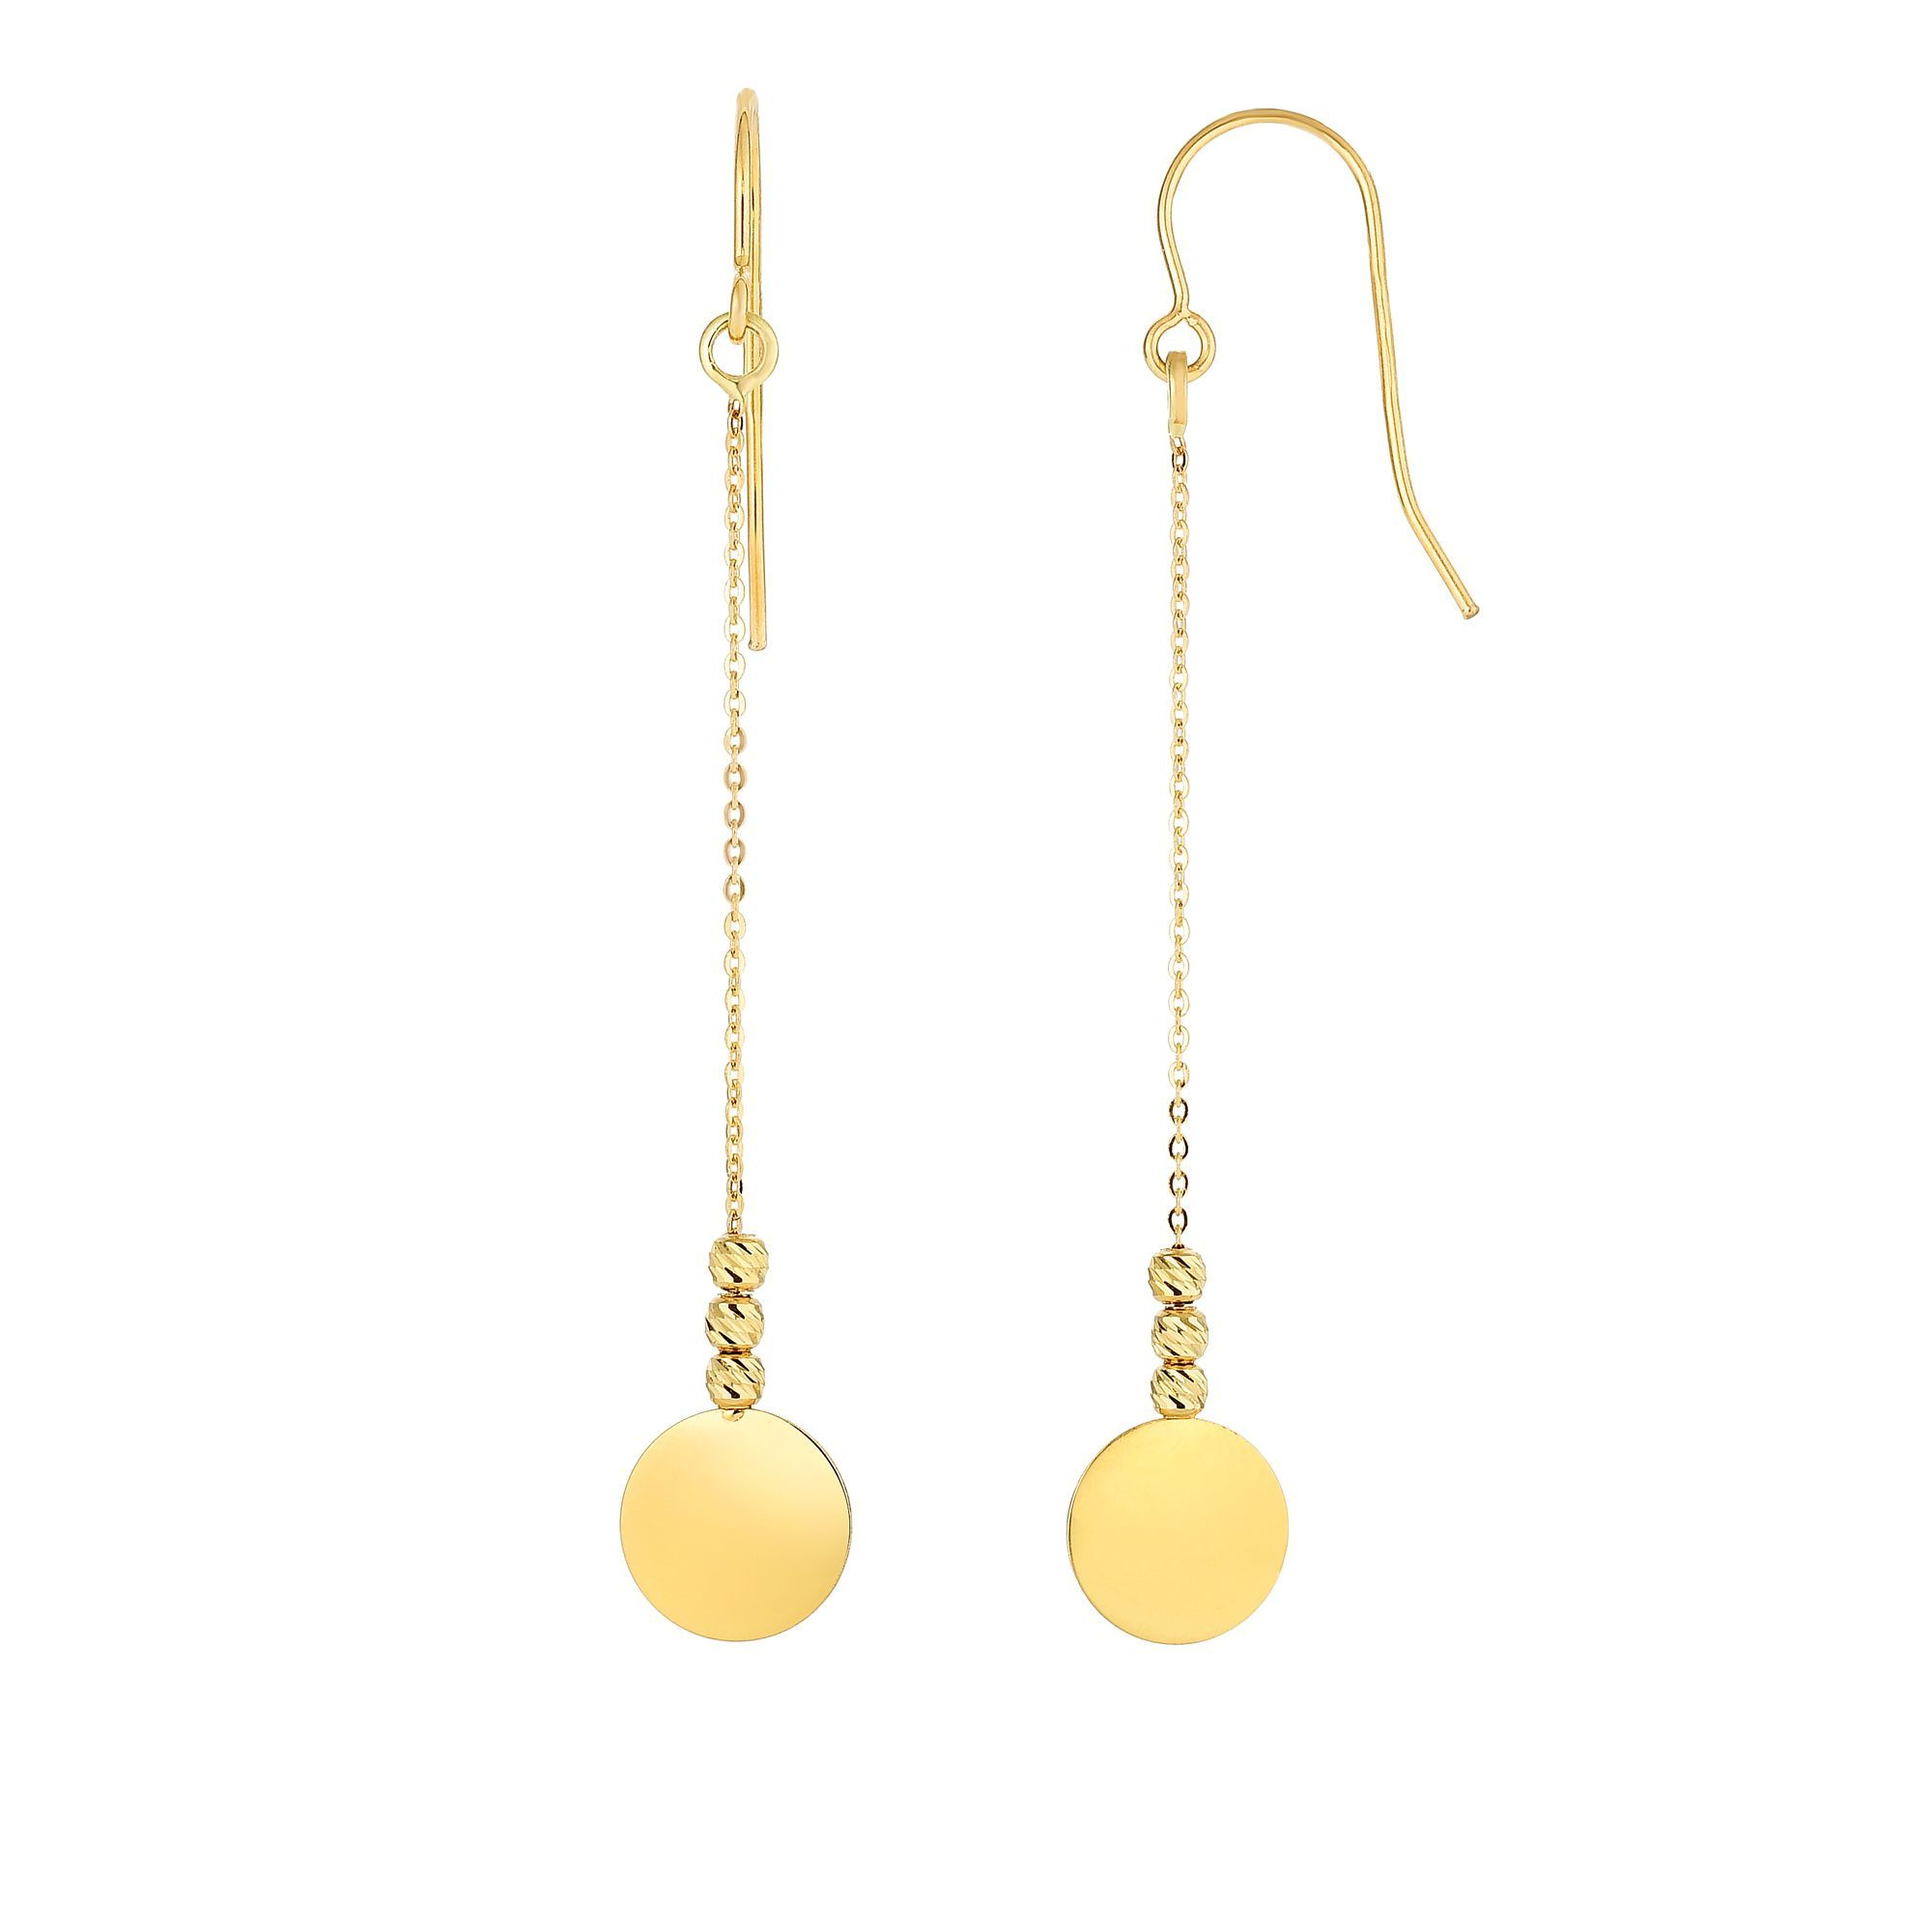 14 Karat Yellow Gold Dangling Disc Earrings